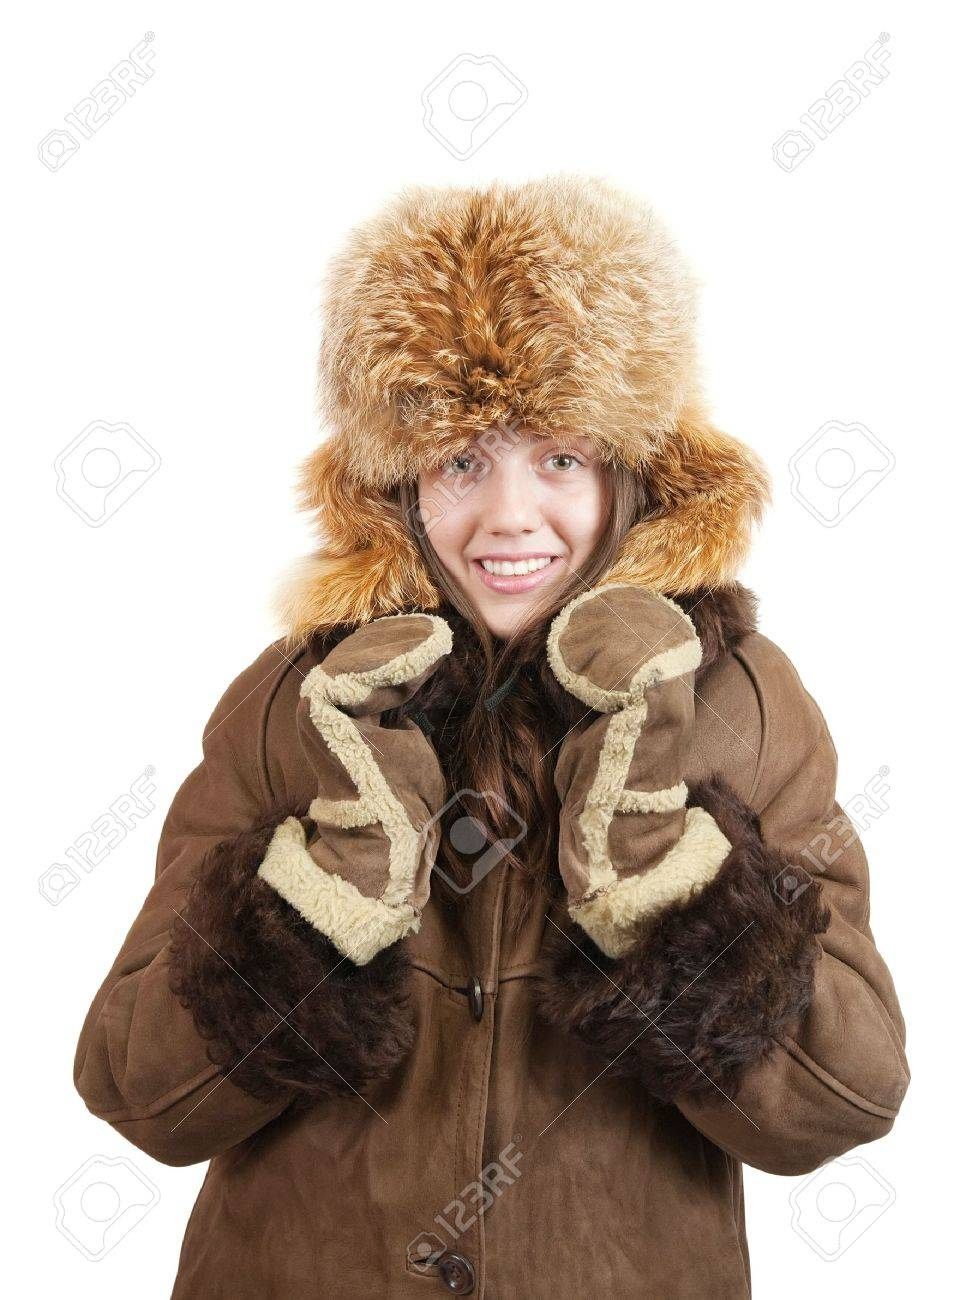 Girl In Sheepskin Coat And Fox Hat On White Background Stock Photo ...